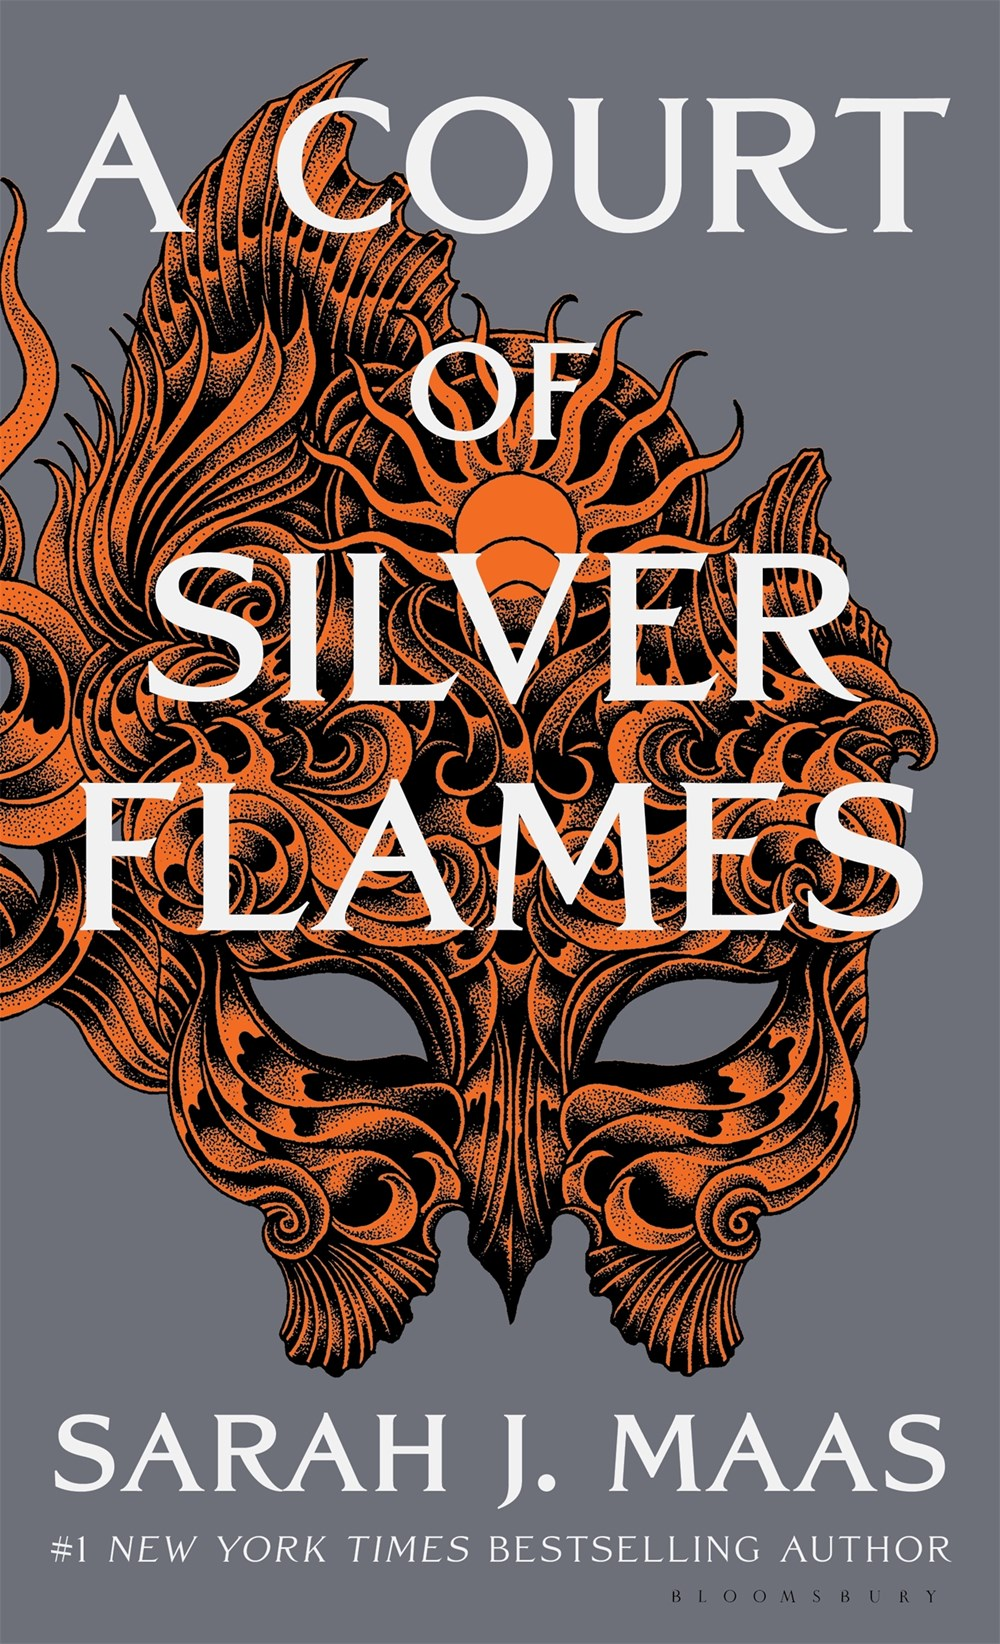 'A Court of Silver Flames' by Sarah J. Maas Tops Bestseller Lists | Book Pulse